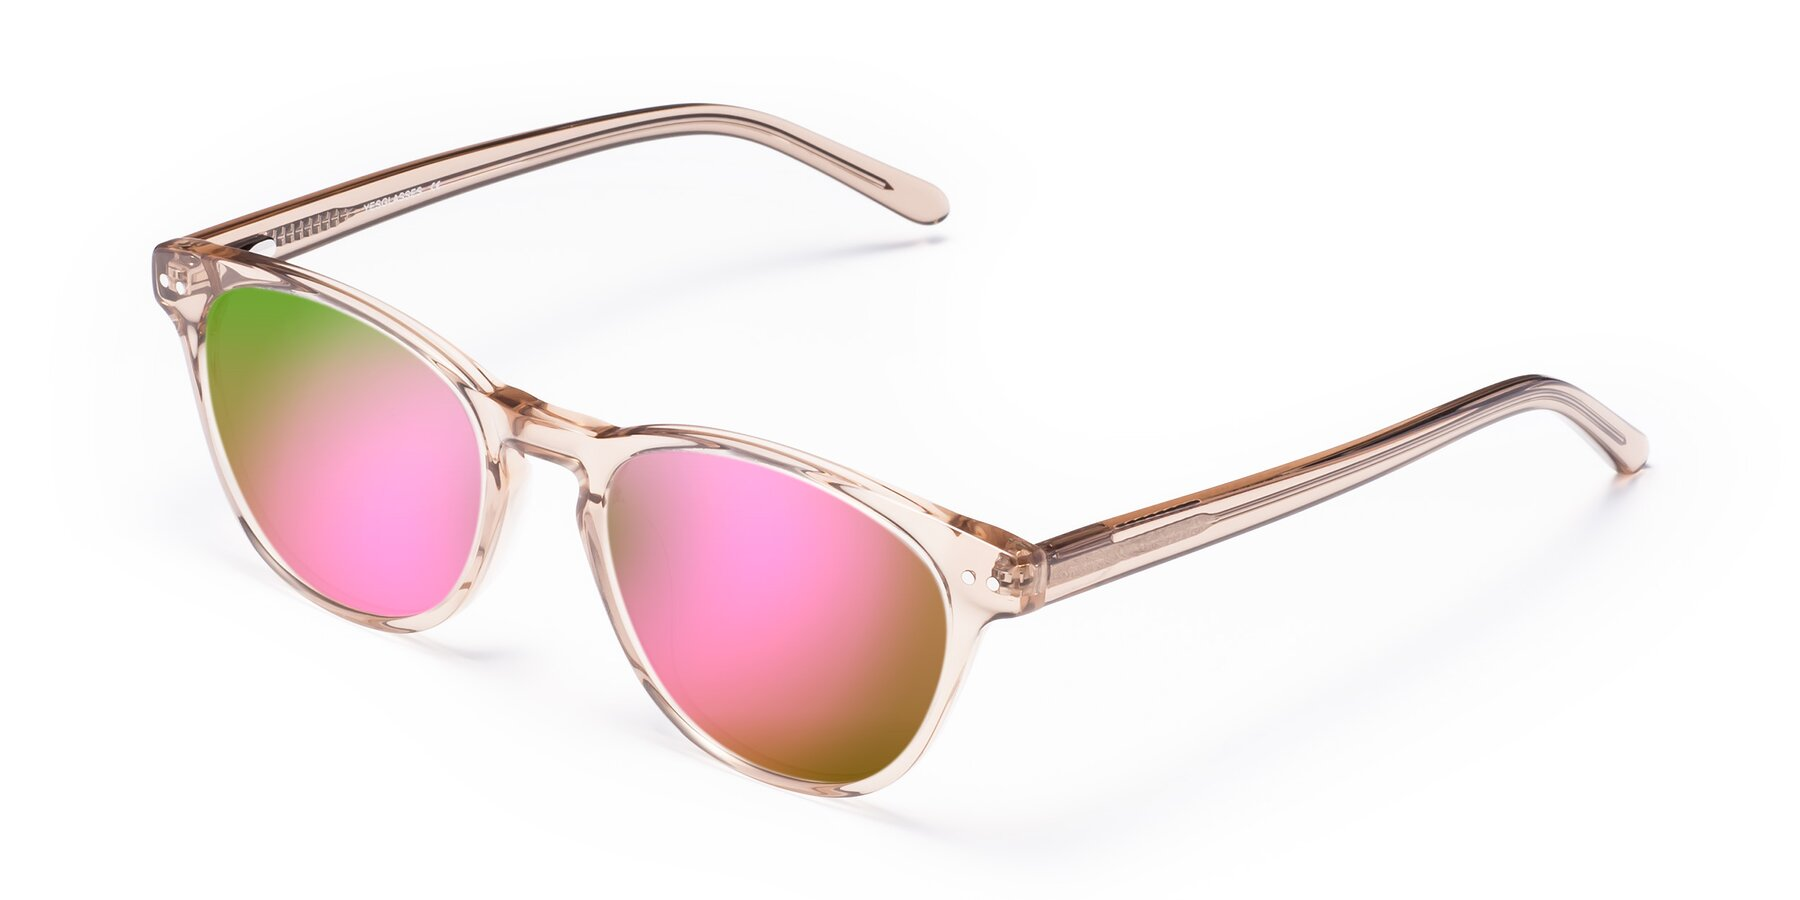 Angle of Blaze in light Brown with Pink Mirrored Lenses